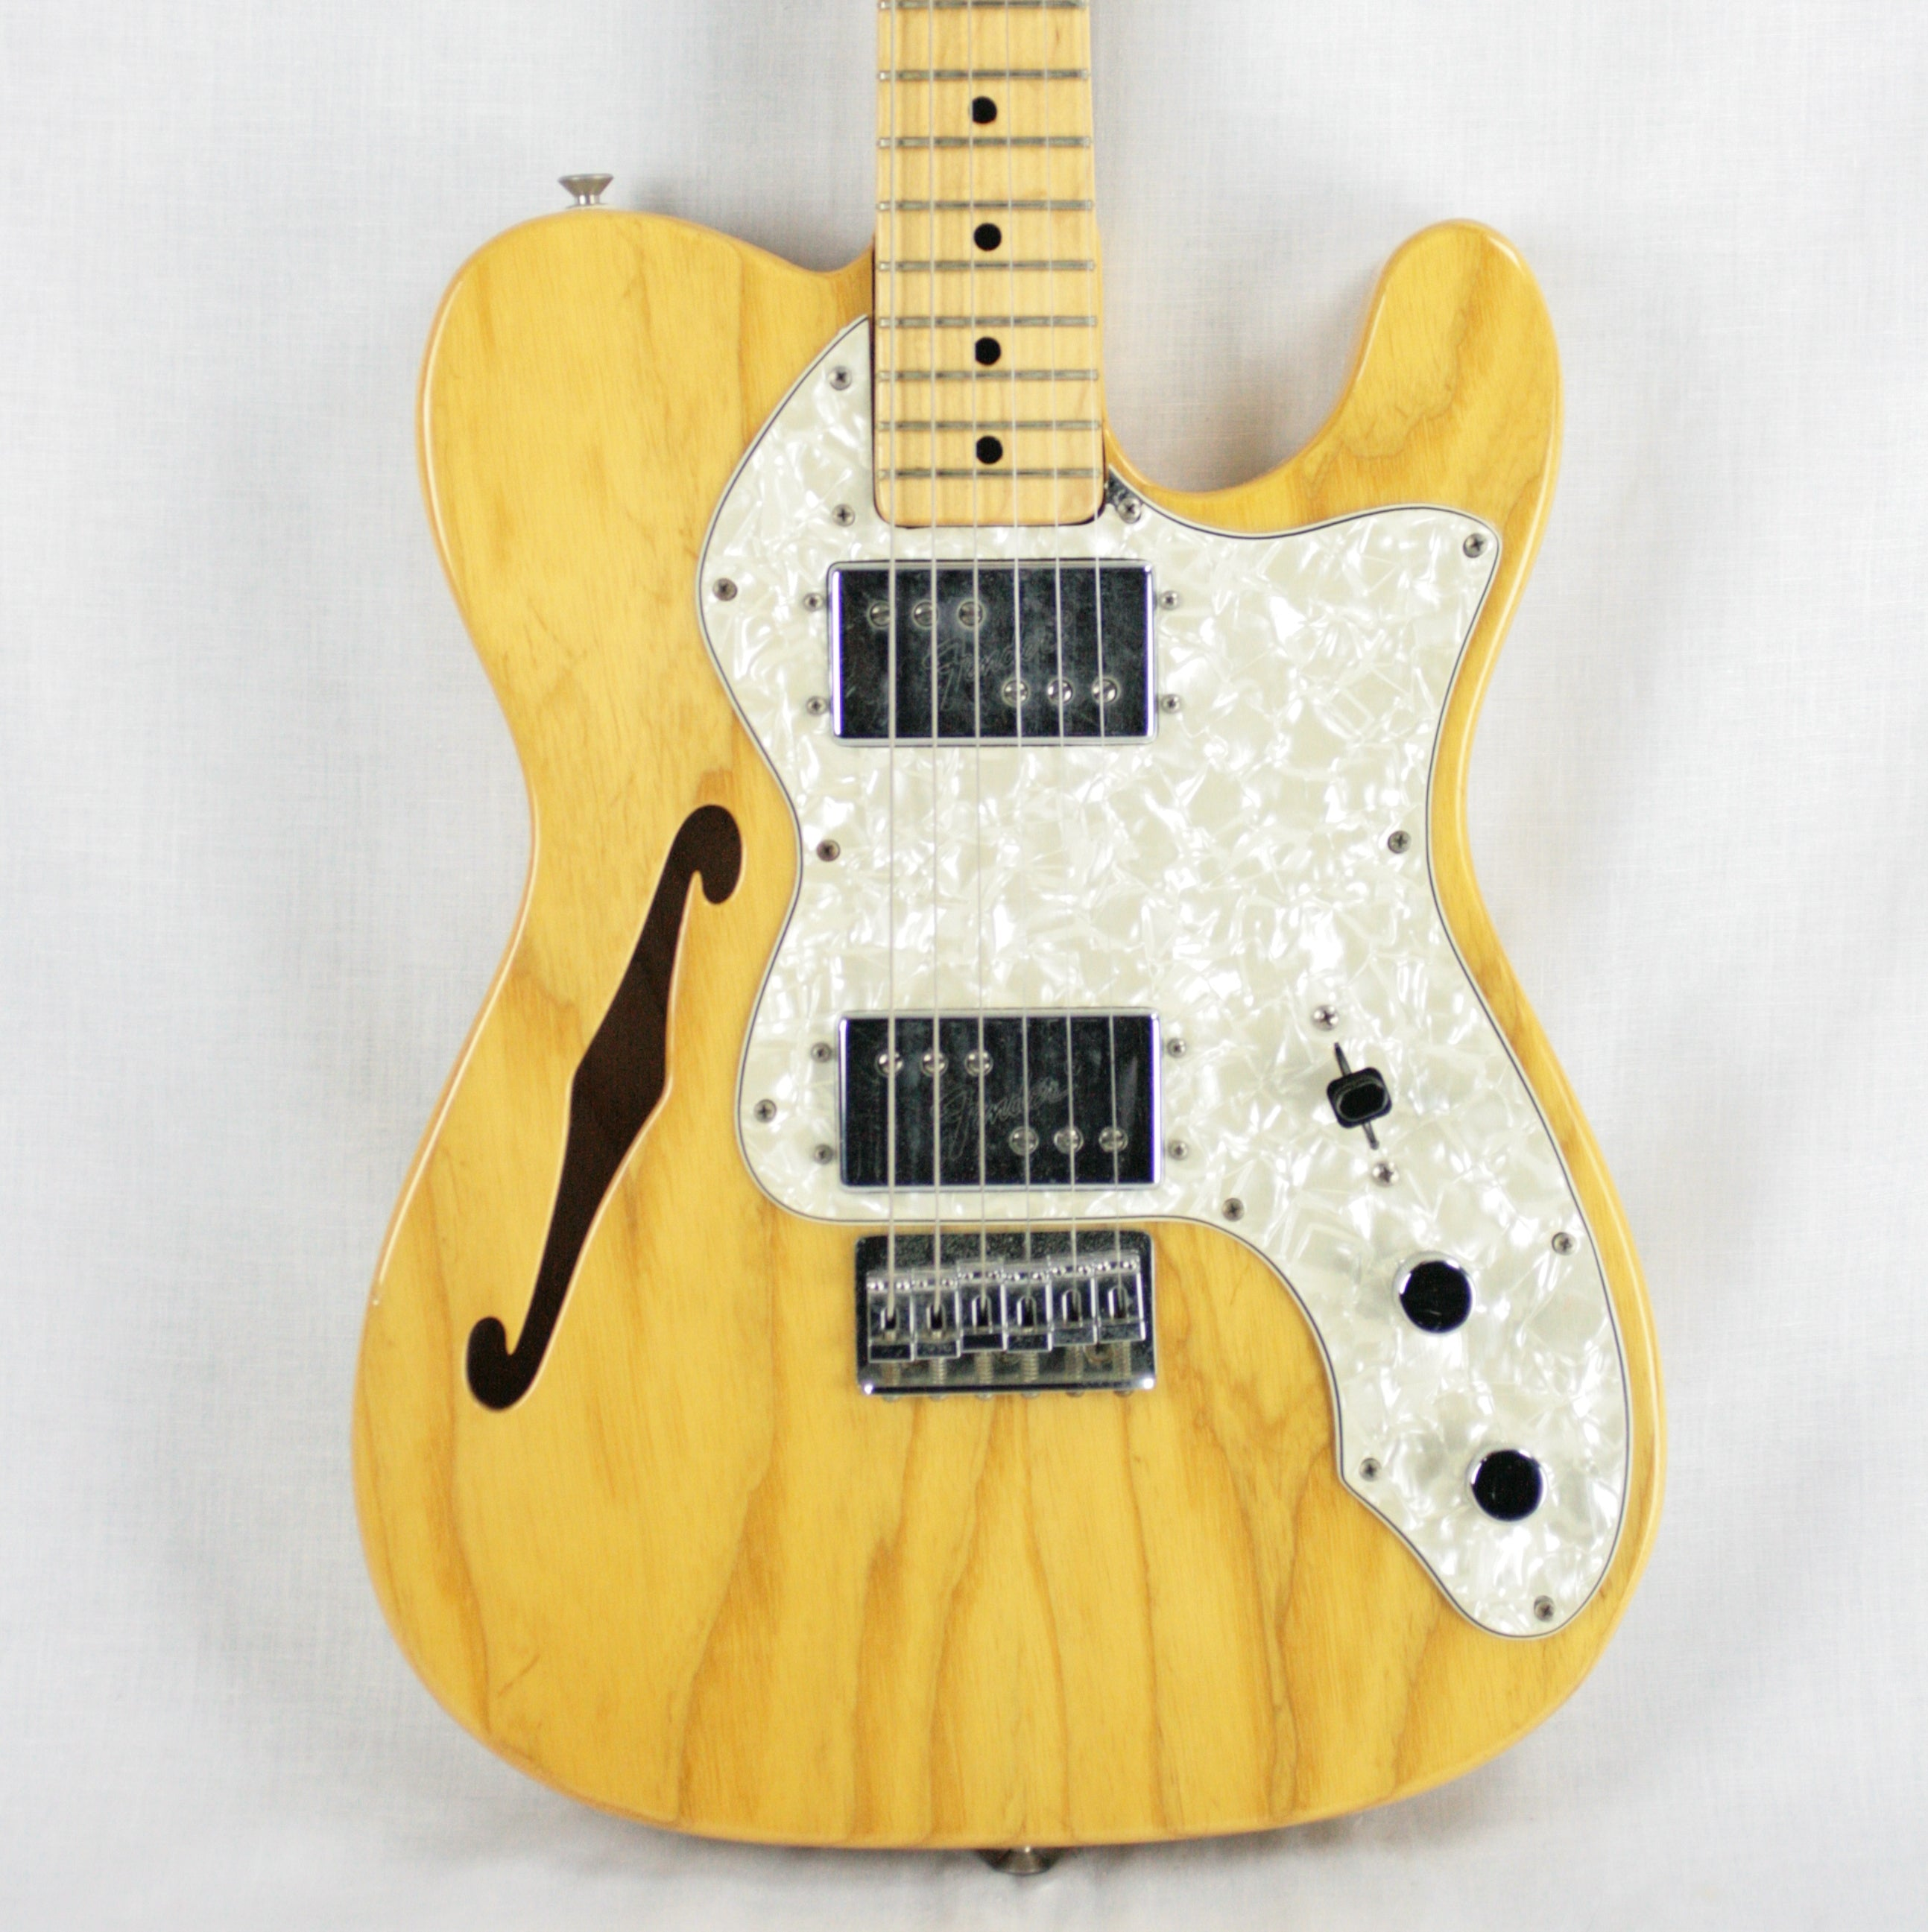 CLEAN 1972 Fender Telecaster Thinline! Vintage 1970's Tele! Single-String Tree! 100% Original!